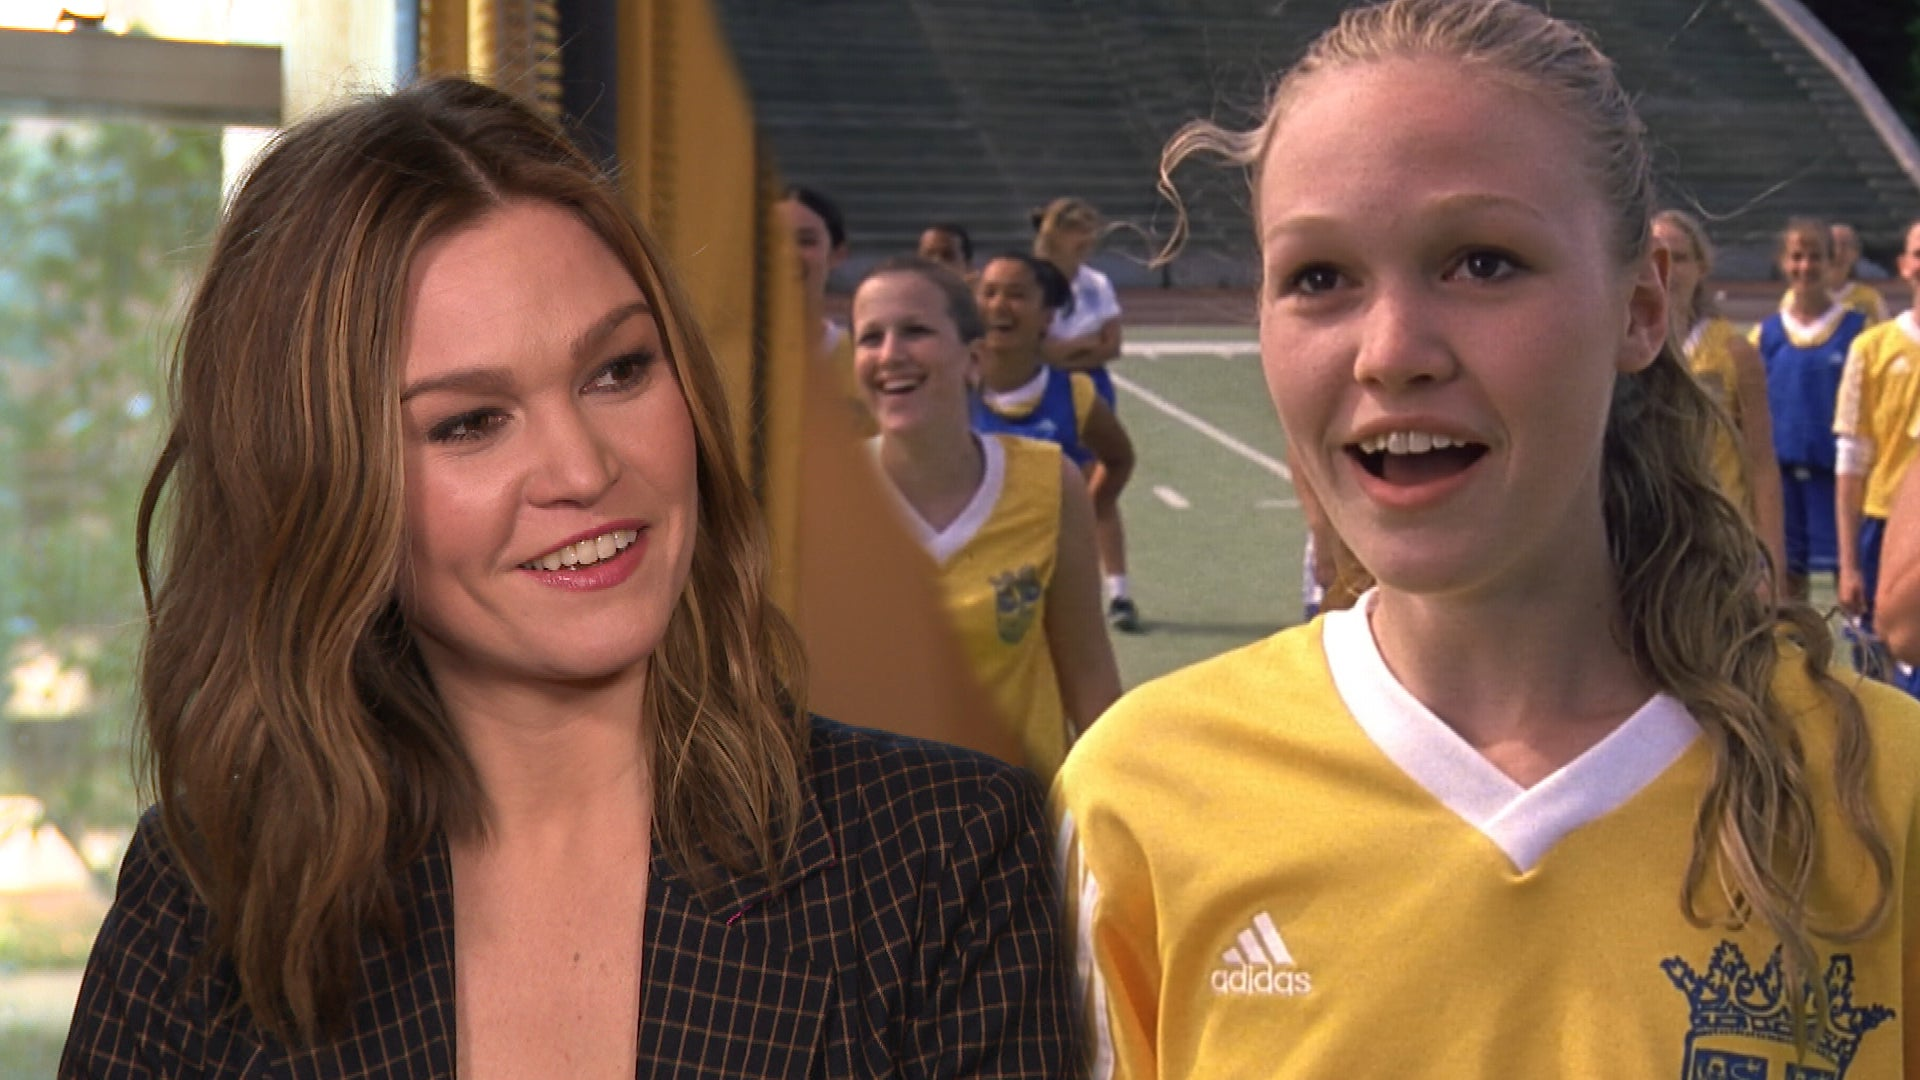 '10 Things I Hate About You' Turns 20! Watch the Cast Reflect on the Iconic Film (Exclusive)